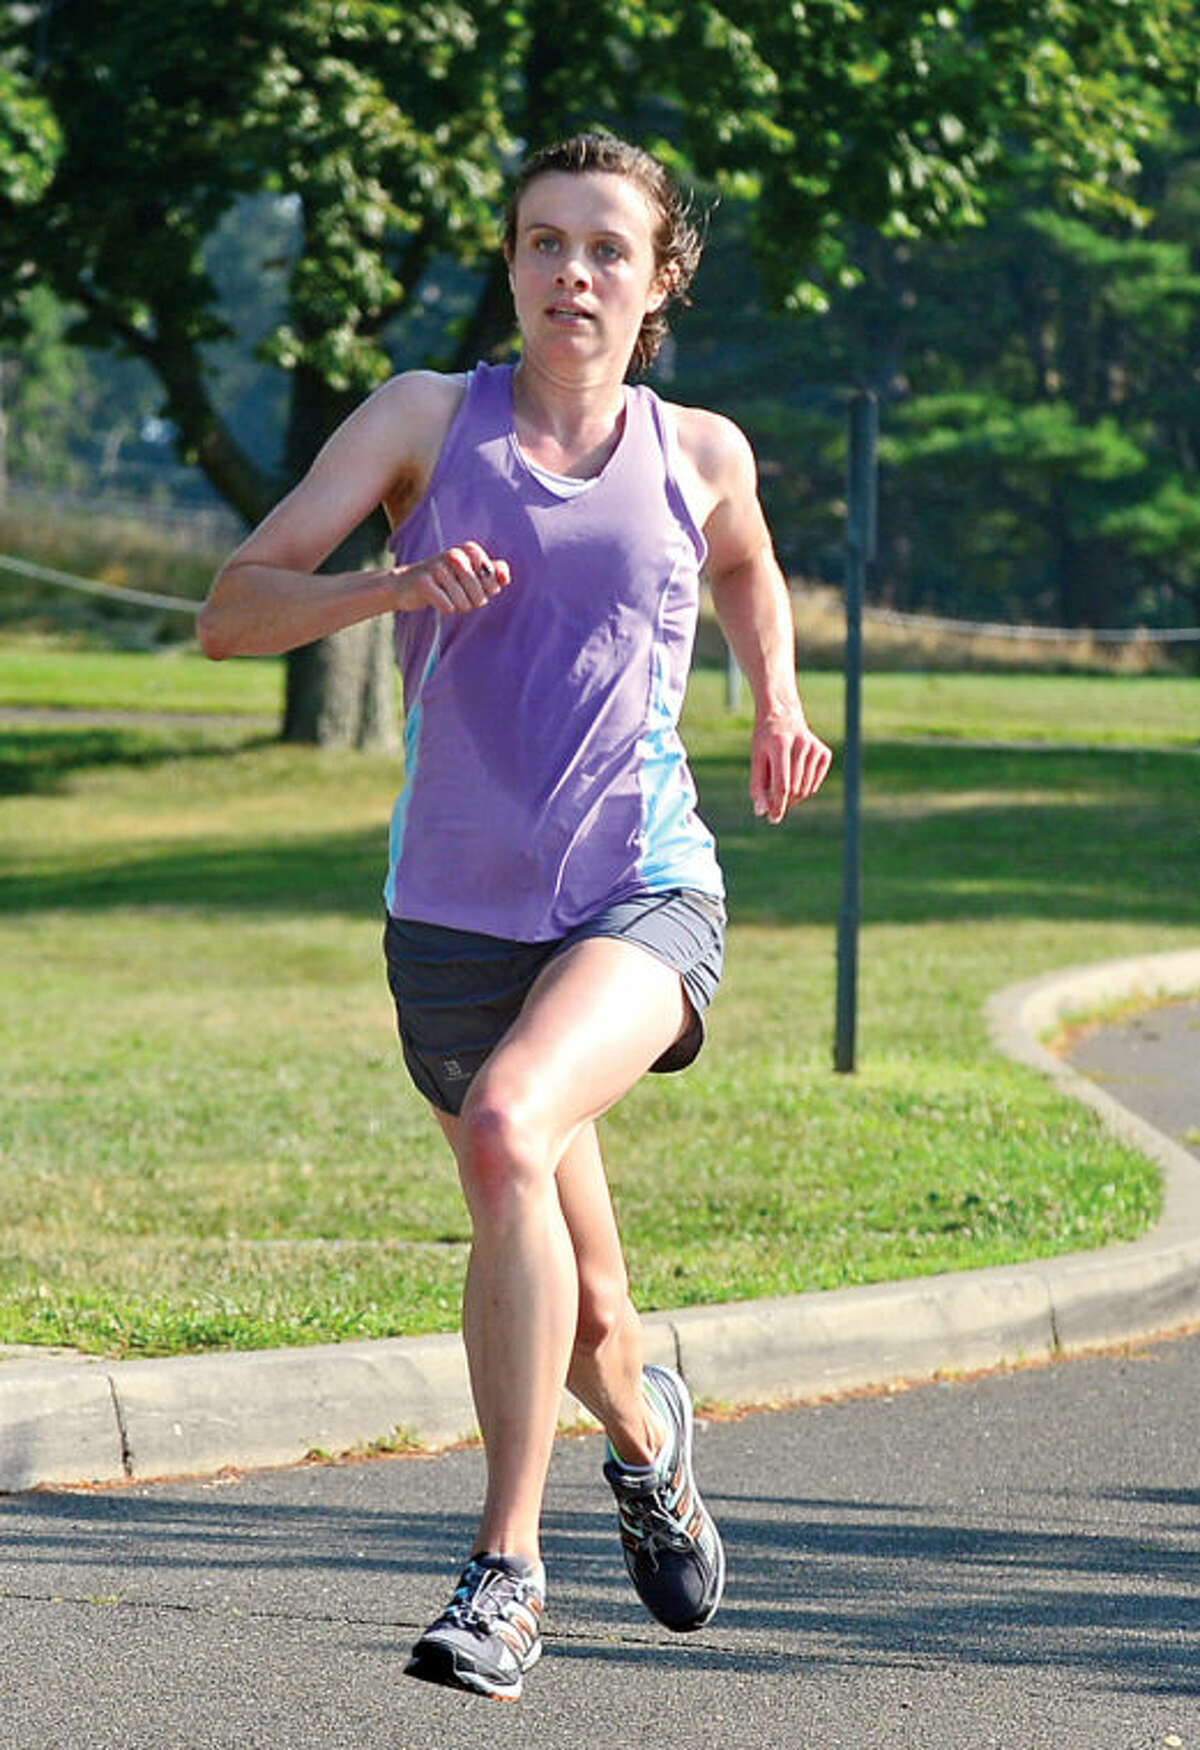 Hour photo / Erik Trautmann Kerry Lyons was the first woman finisher in the Westport Road Runners race no. 3, a 3.8 miler, at Longshore park Saturday.